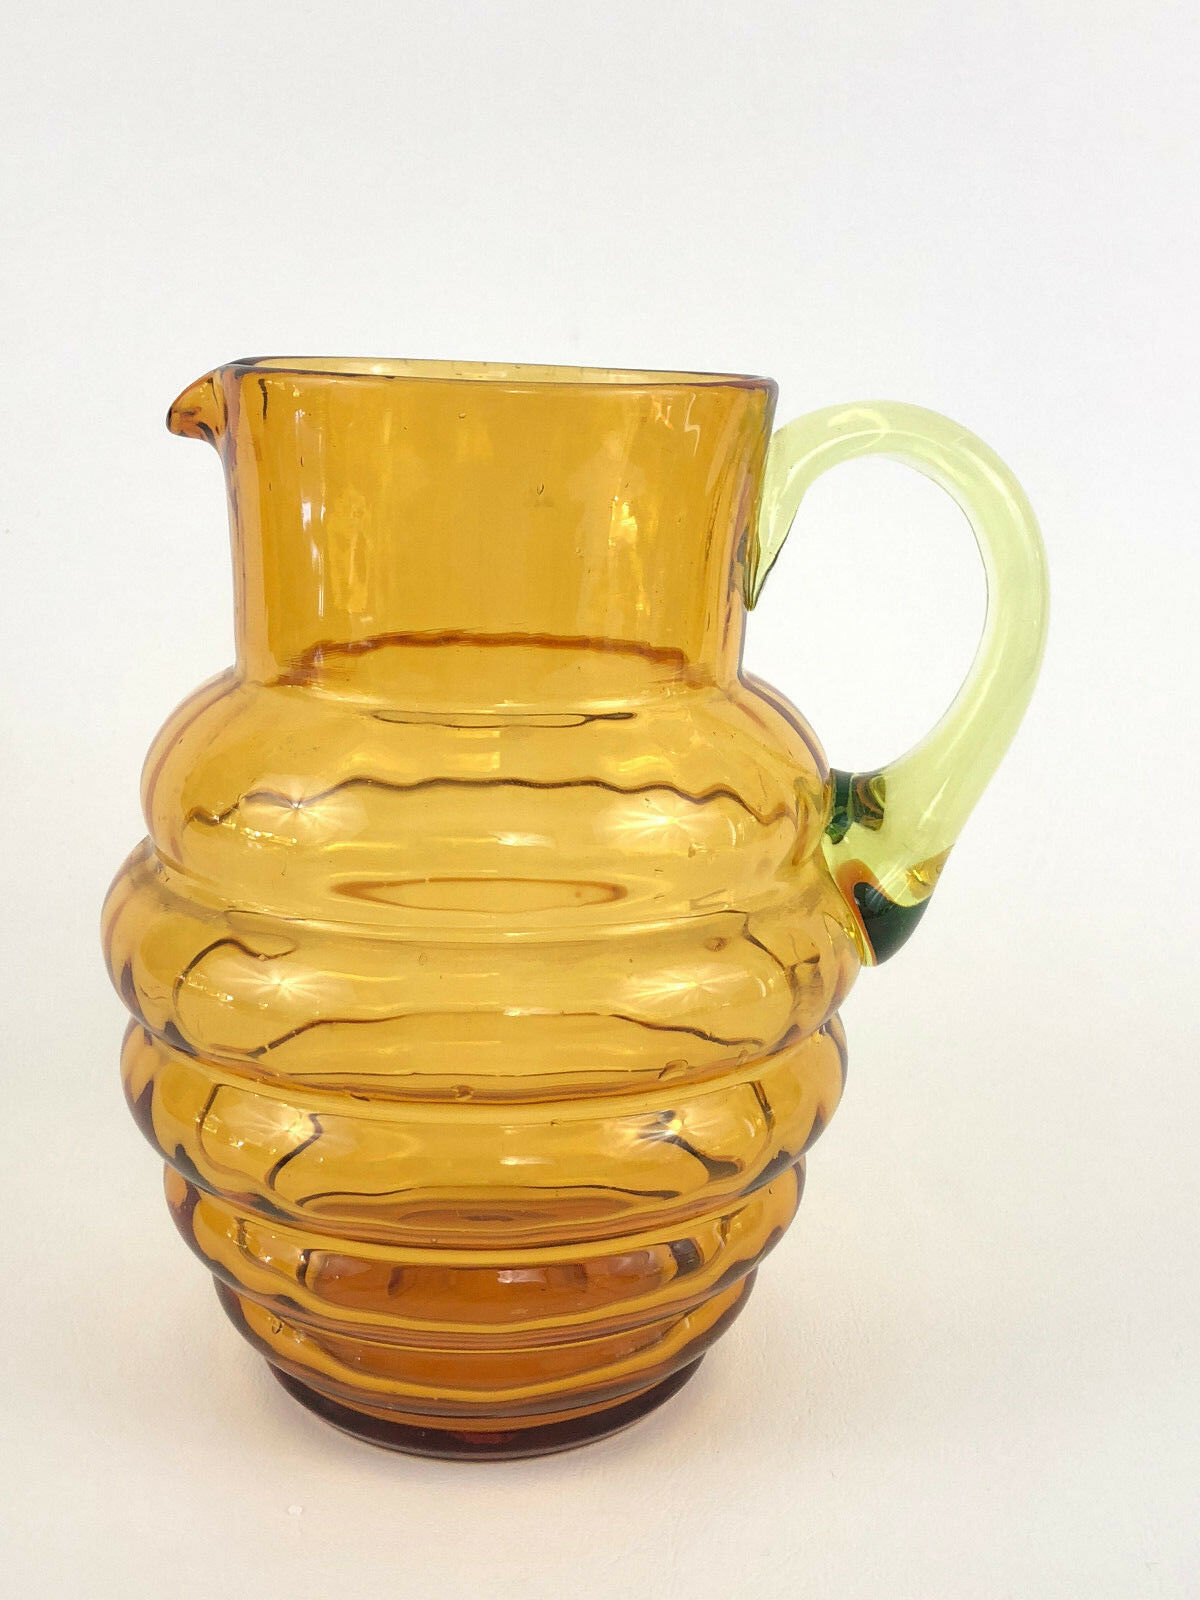 Vintage Art Deco amber glass water pitcher, uranium vert handle 1920s 1930s